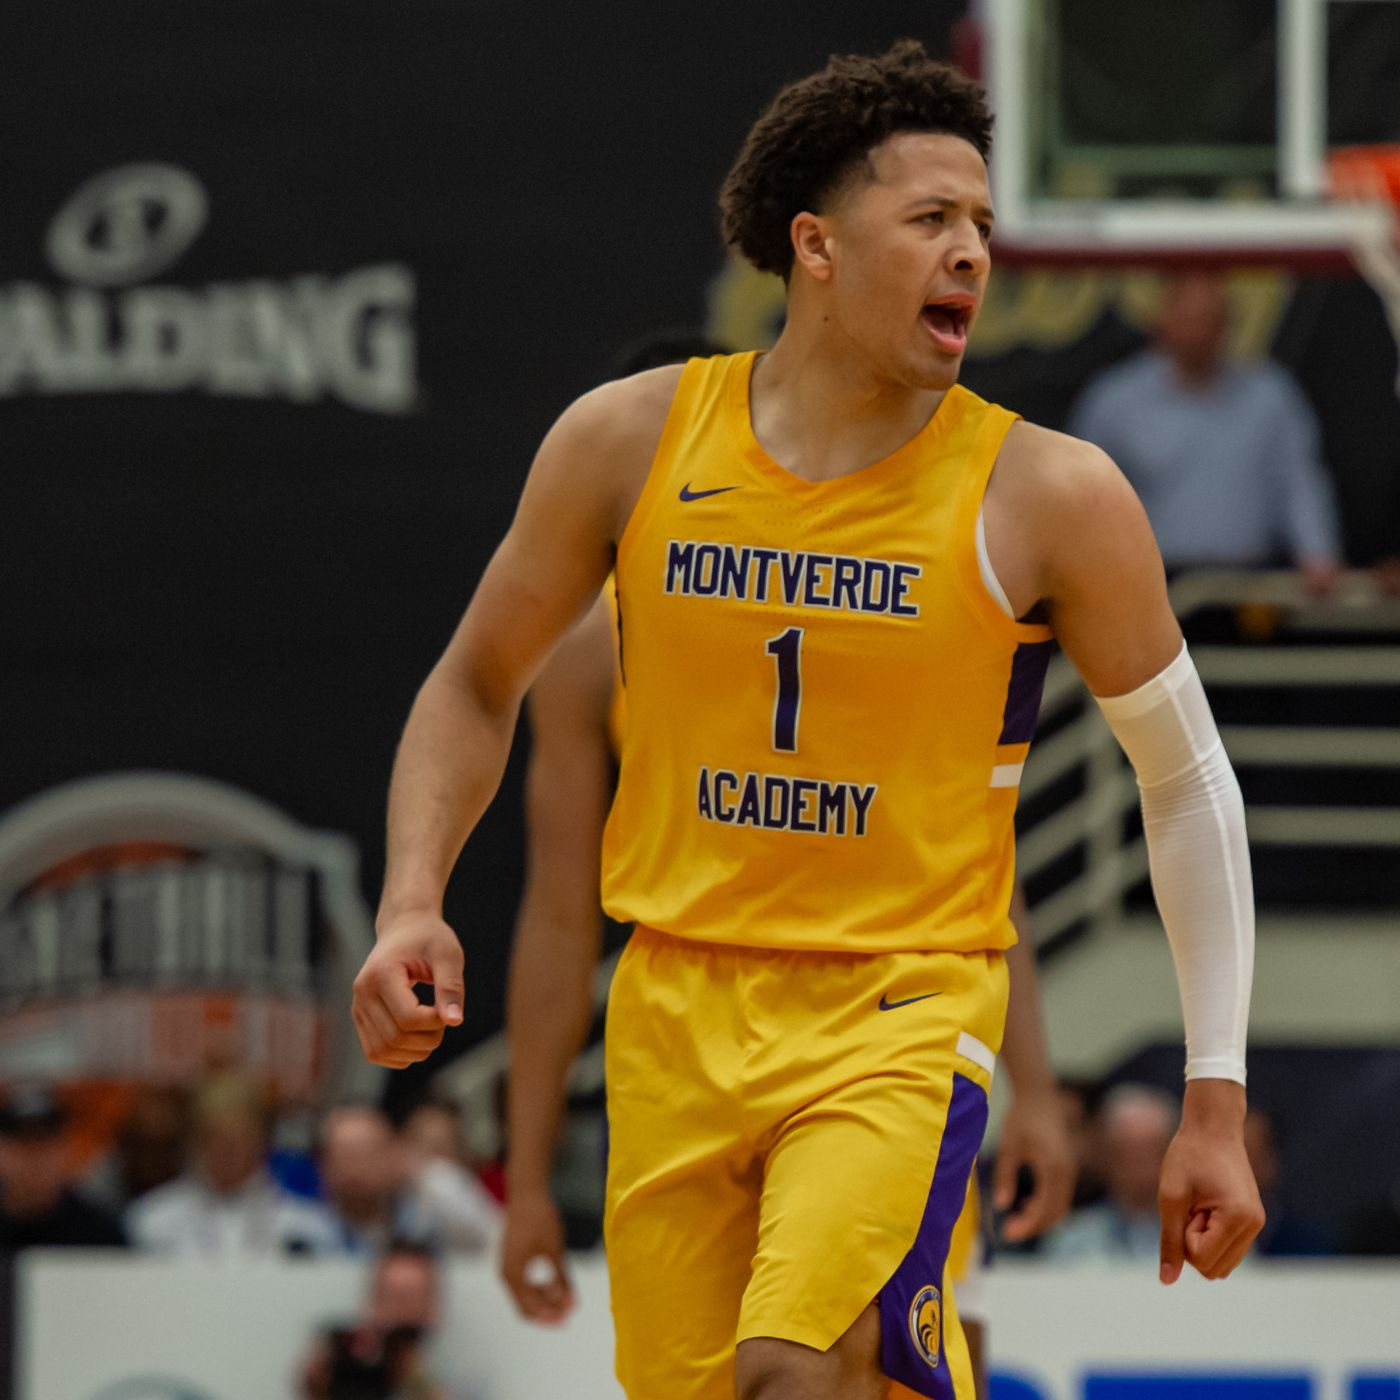 Best Nba Rookies 2021 The 2021 NBA Draft will be way better than the 2020 draft